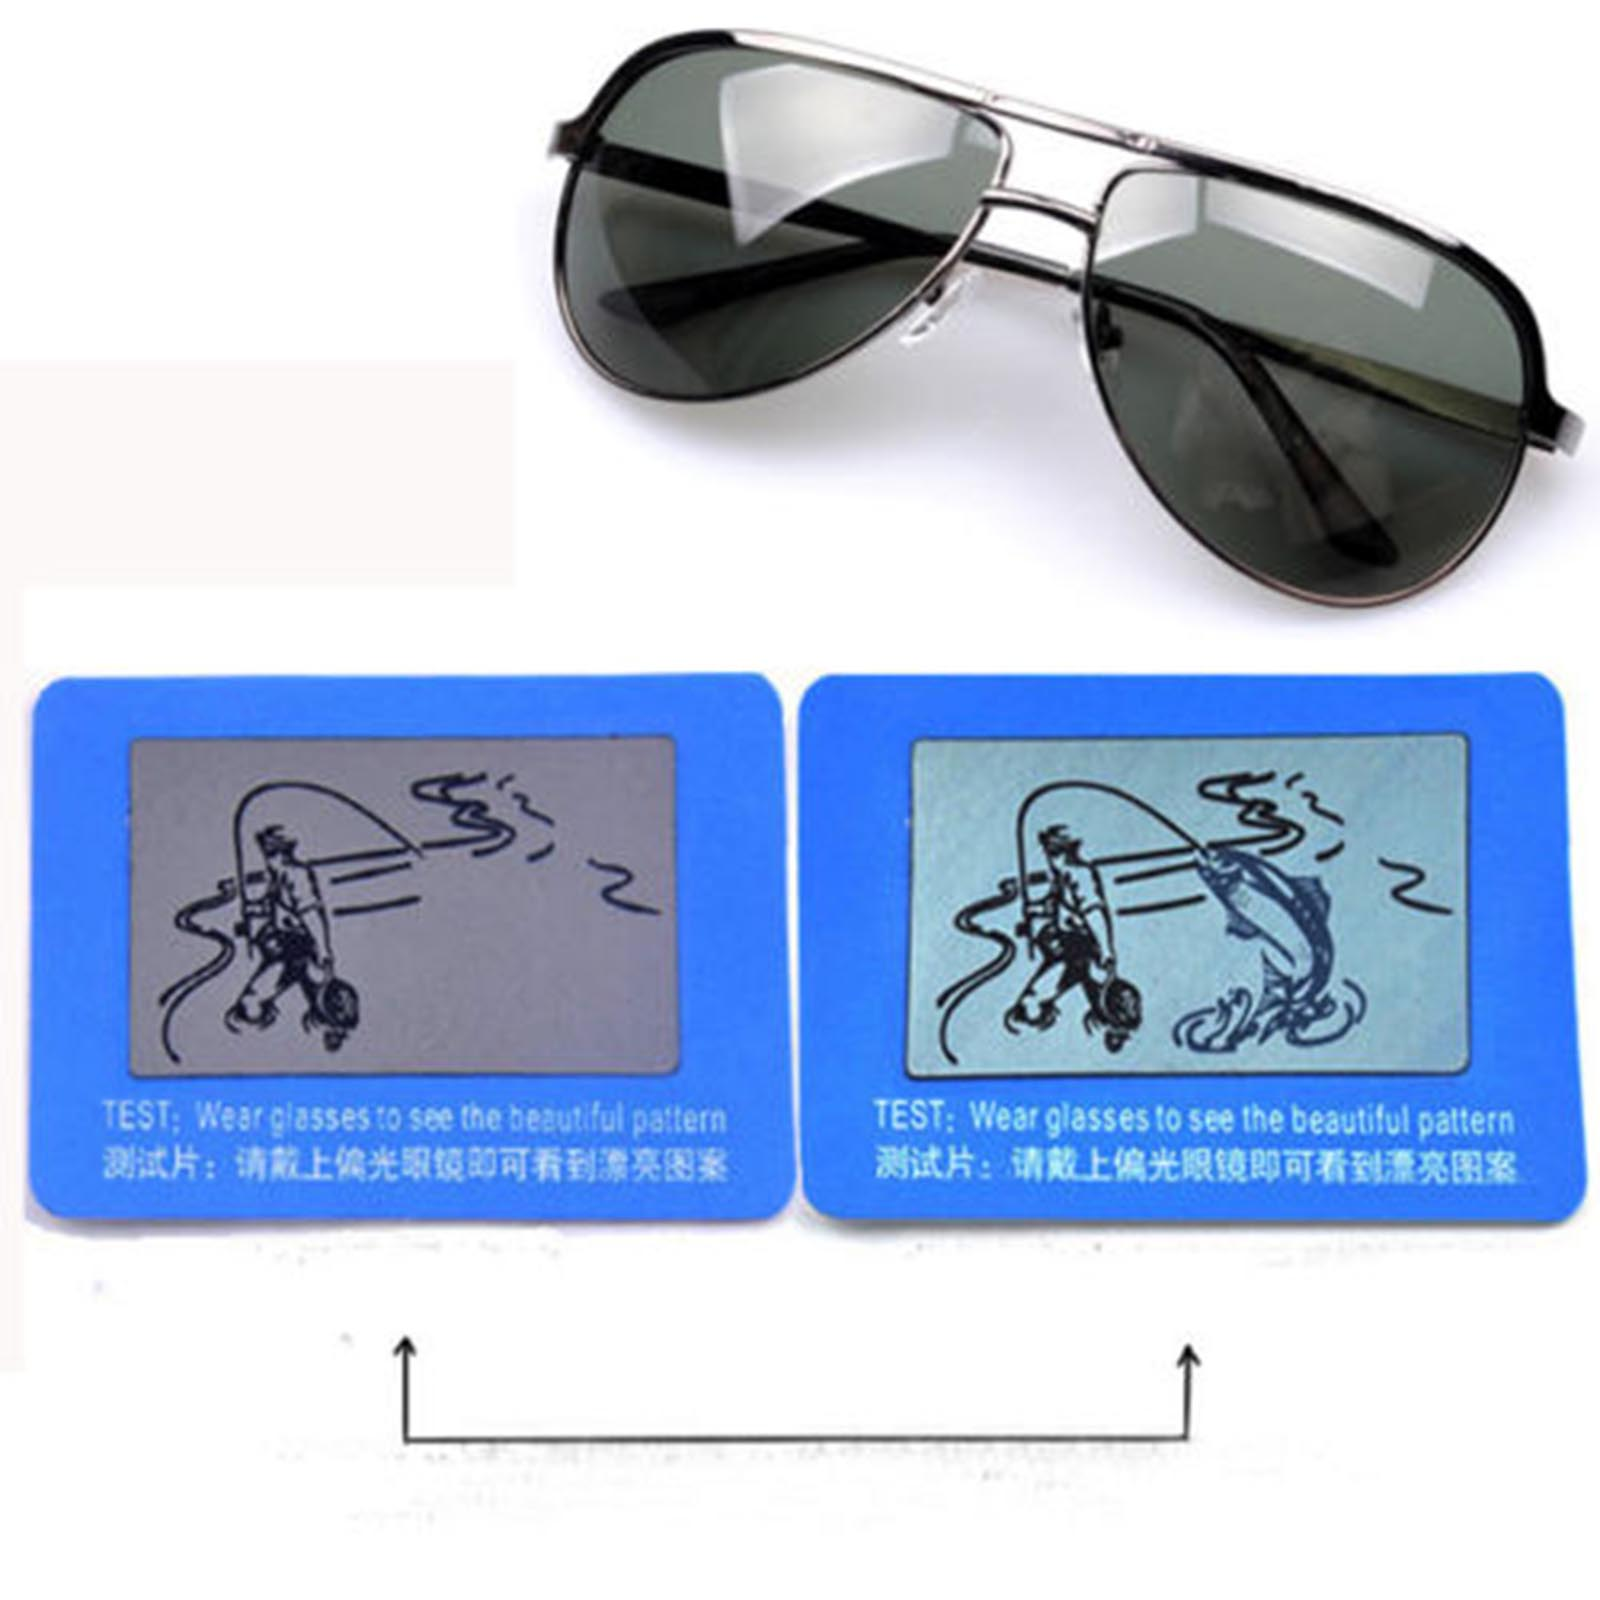 85 Shade Polarized Eyewear Women's Us1 Practical Men's From Sunglasses Polarised Test Accessories 10pcspack In Card 5Off Apparel Magical tQxshrCdB